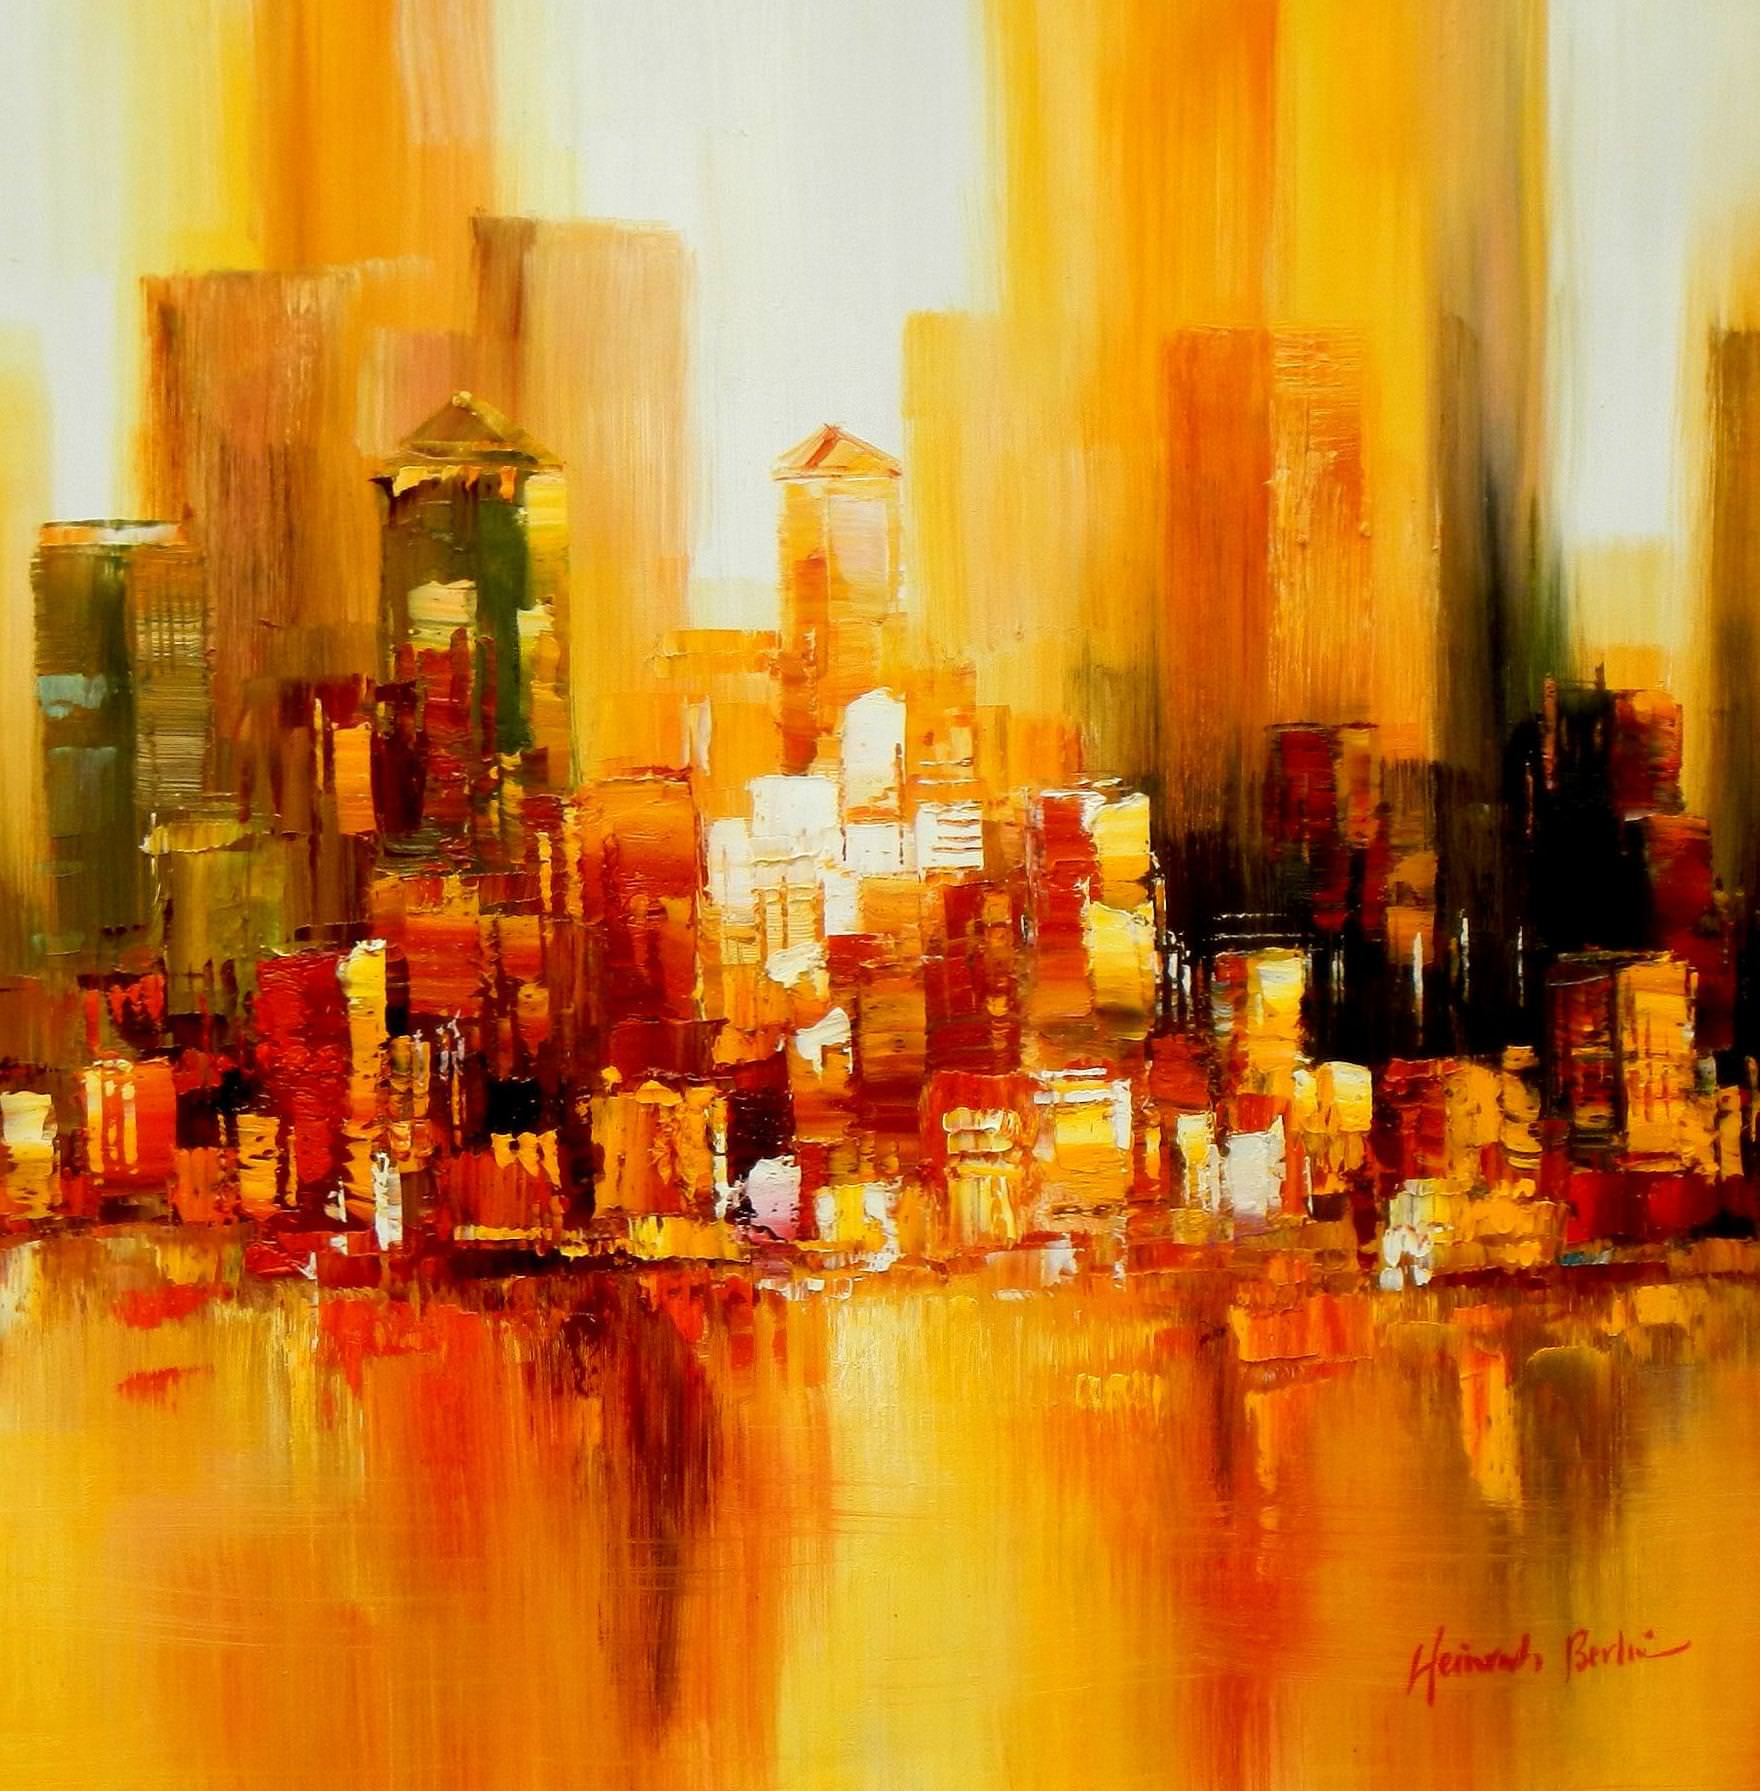 Abstrakt New York Manhattan Skyline im Herbst e93411 60x60cm abstraktes Ölbild